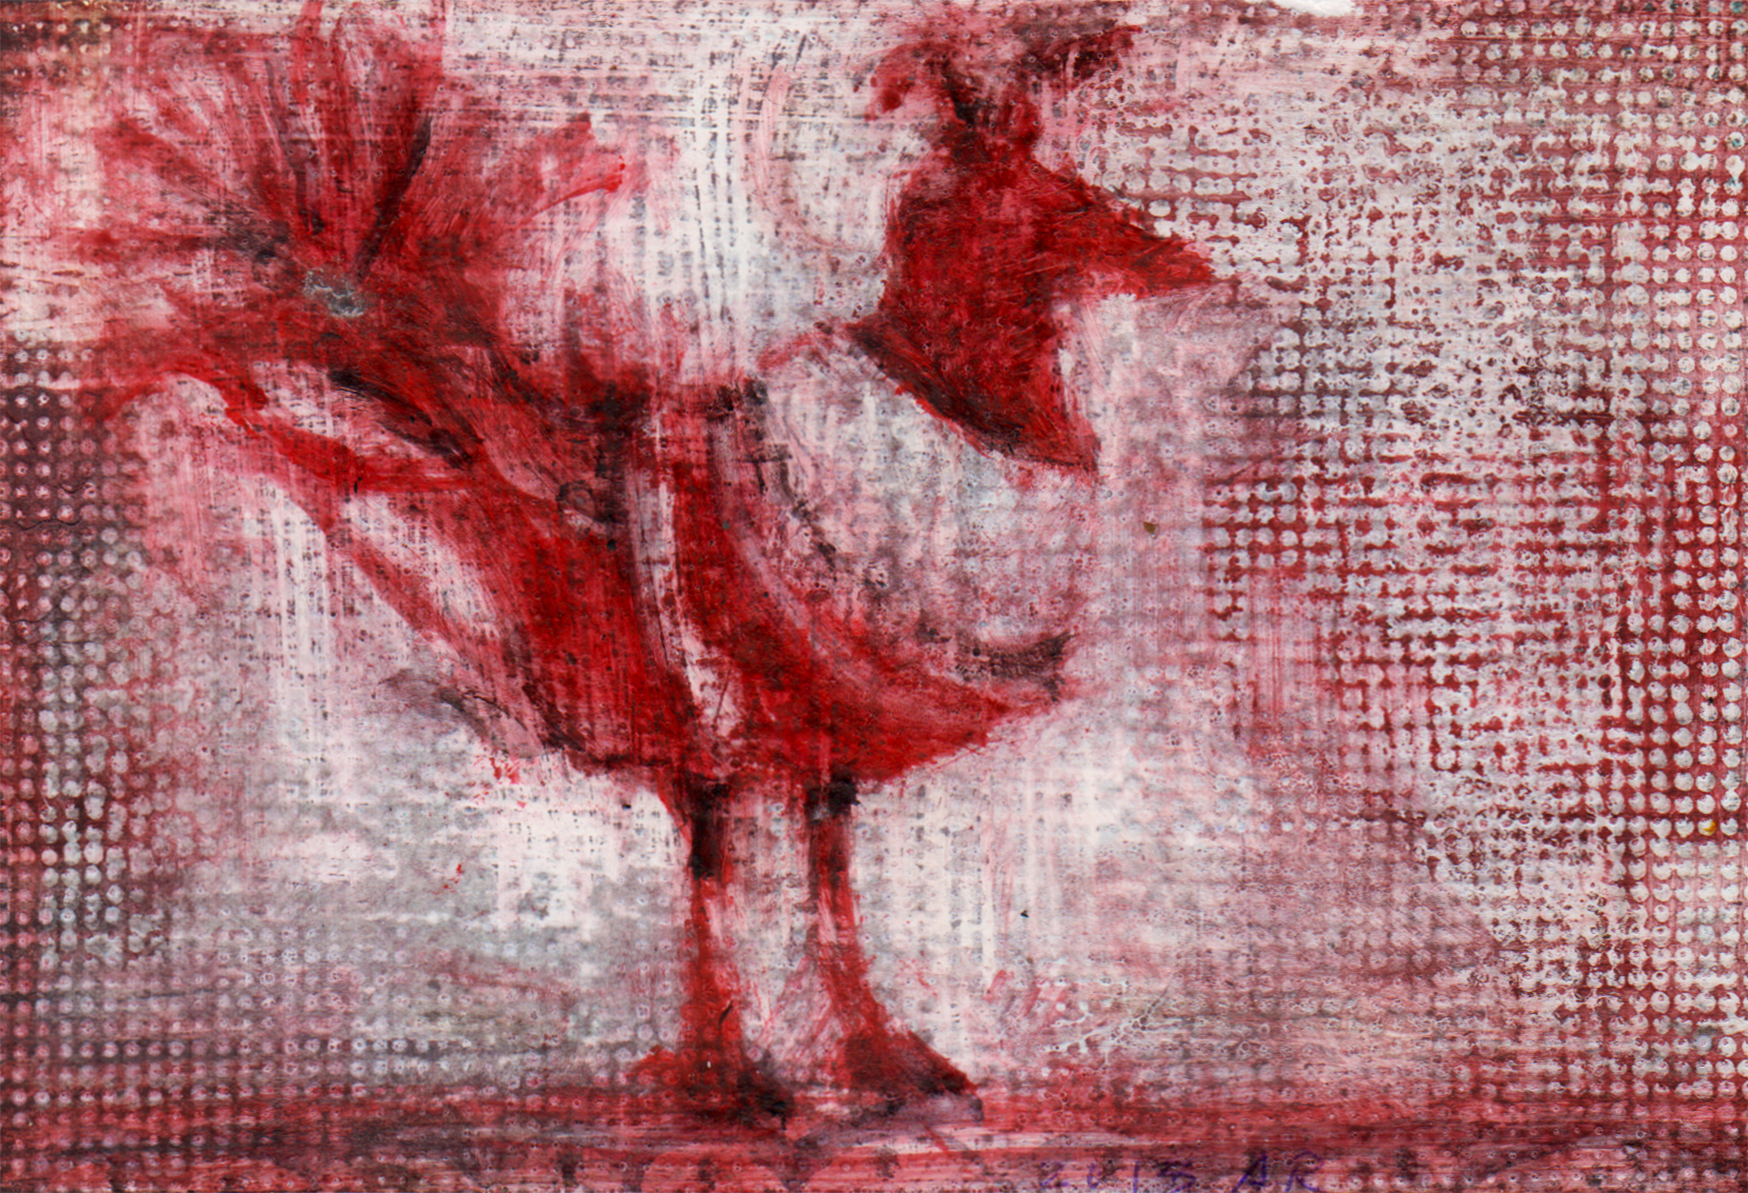 Alicia Rothman - Red Bird tif.jpg